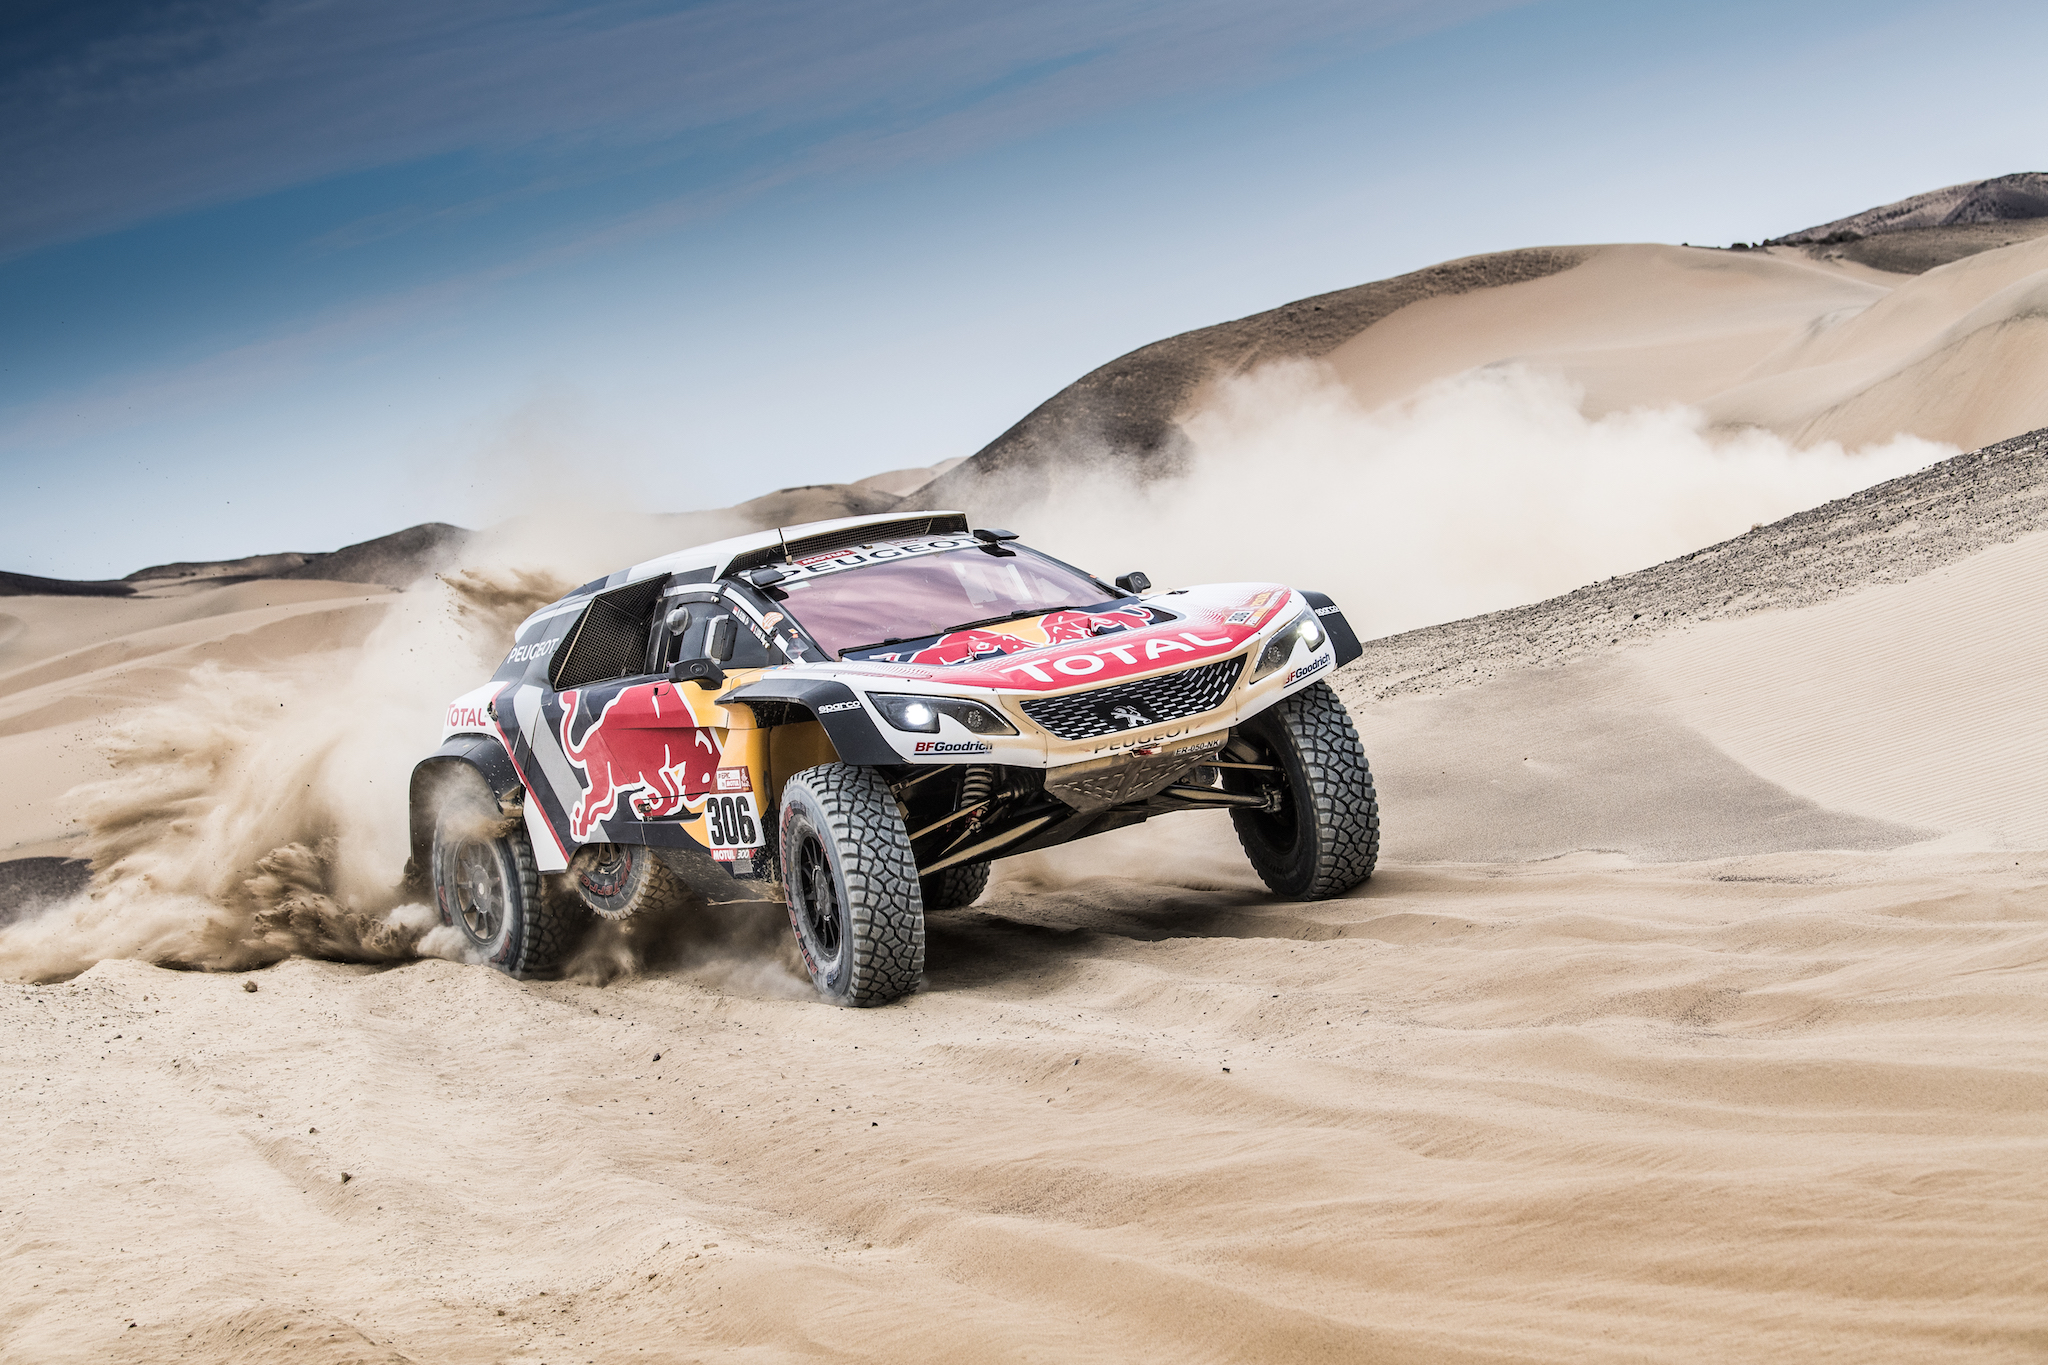 peugeot team dakar 2018 hd 2048x1365 imagenes wallpapers gratis vehiculos autos fondos. Black Bedroom Furniture Sets. Home Design Ideas